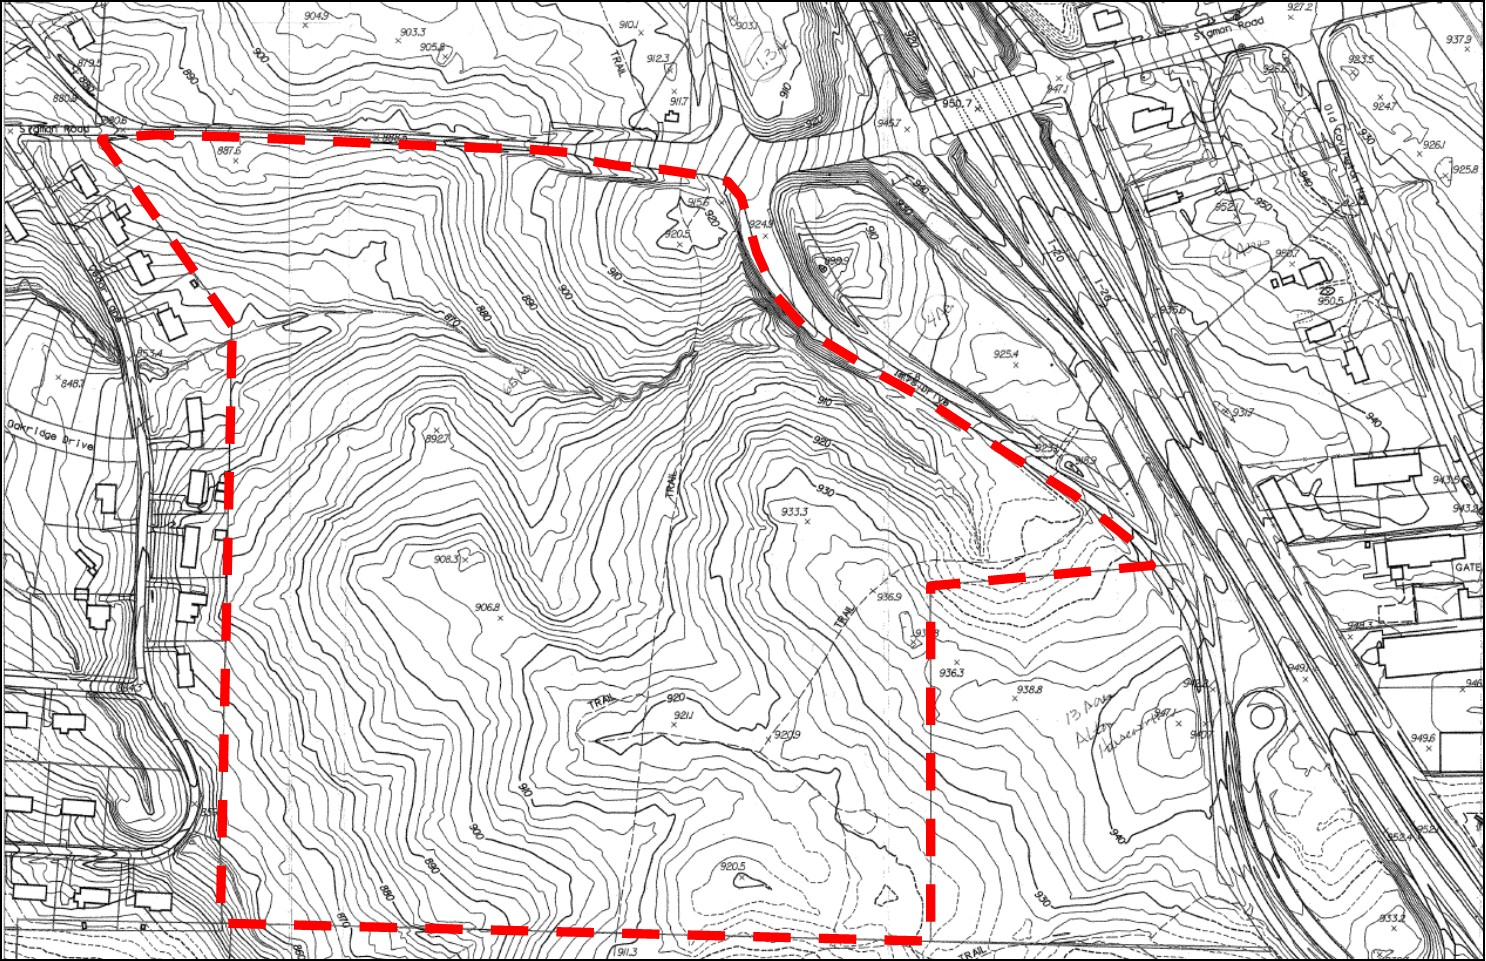 65 Acre Topo Outlined.jpg